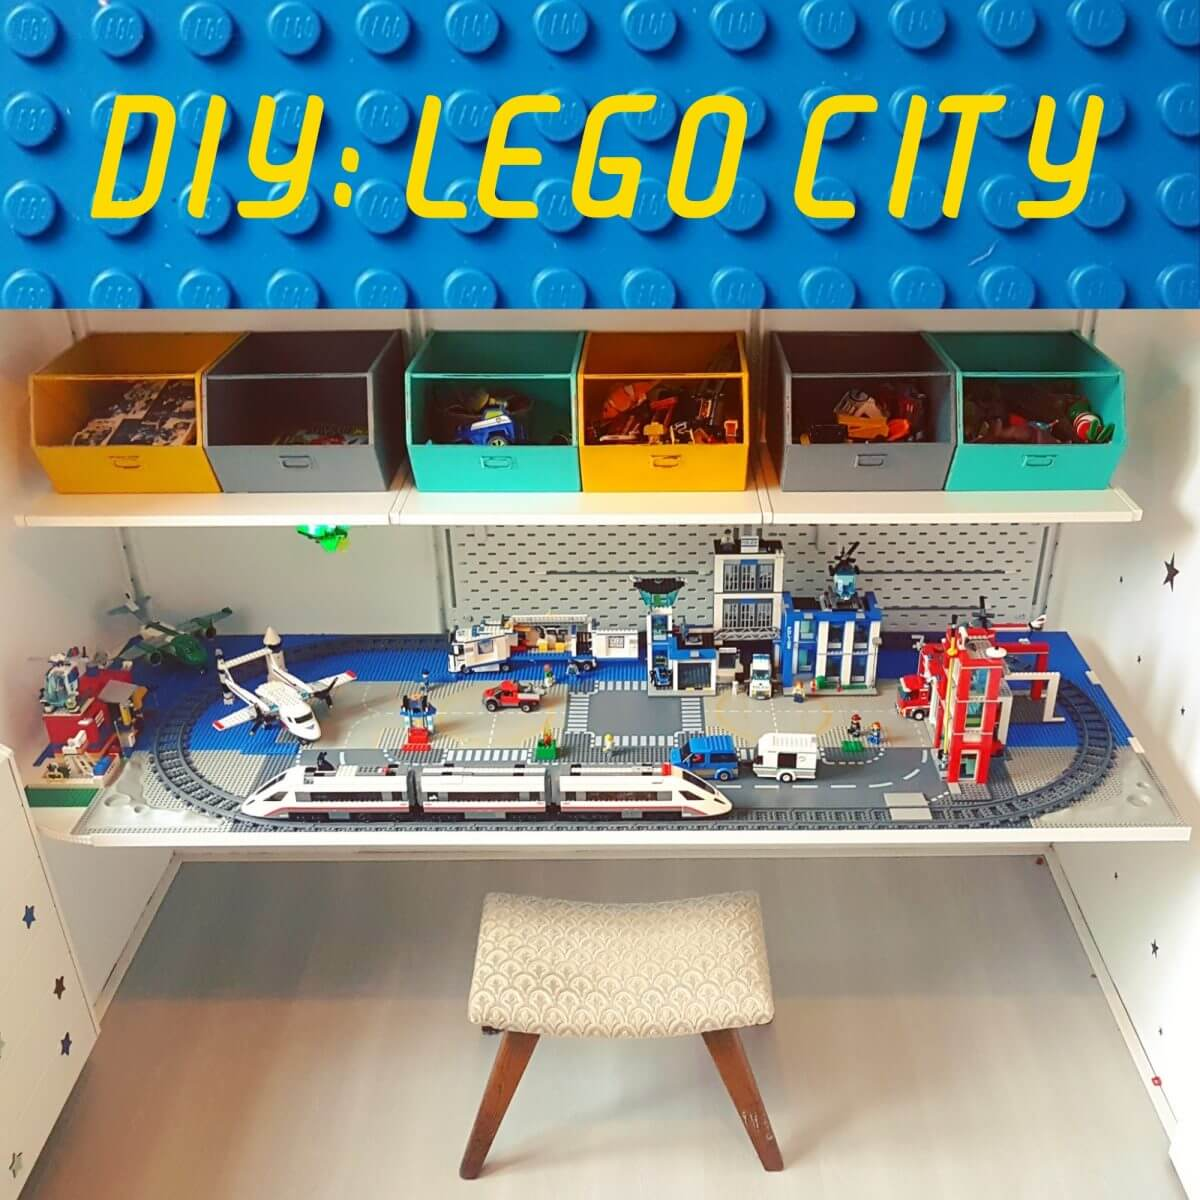 DIY: Lego City treintafel stad op bureau - train table lego desk